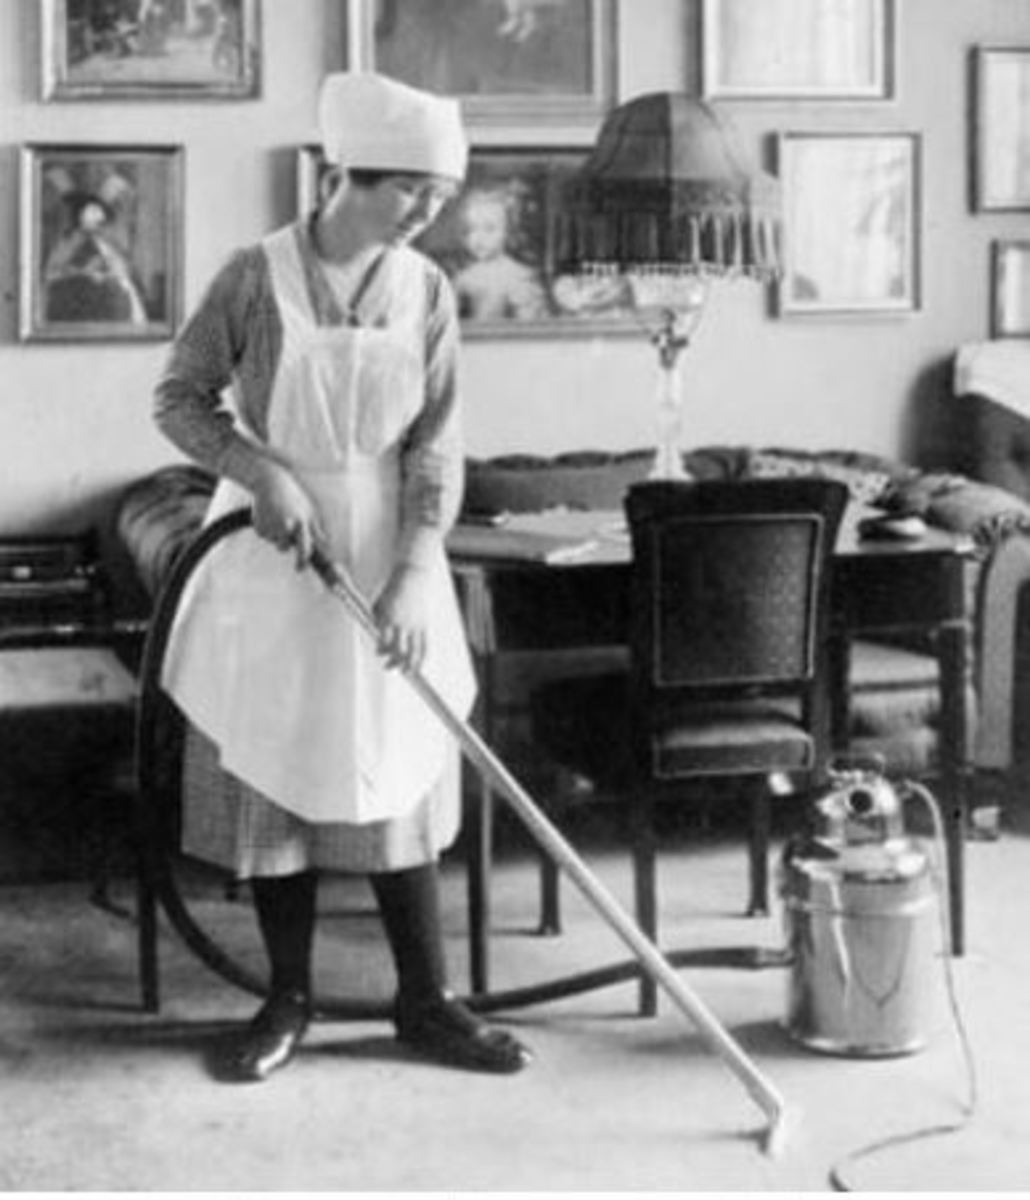 Housemaid cleaner – ca 1912